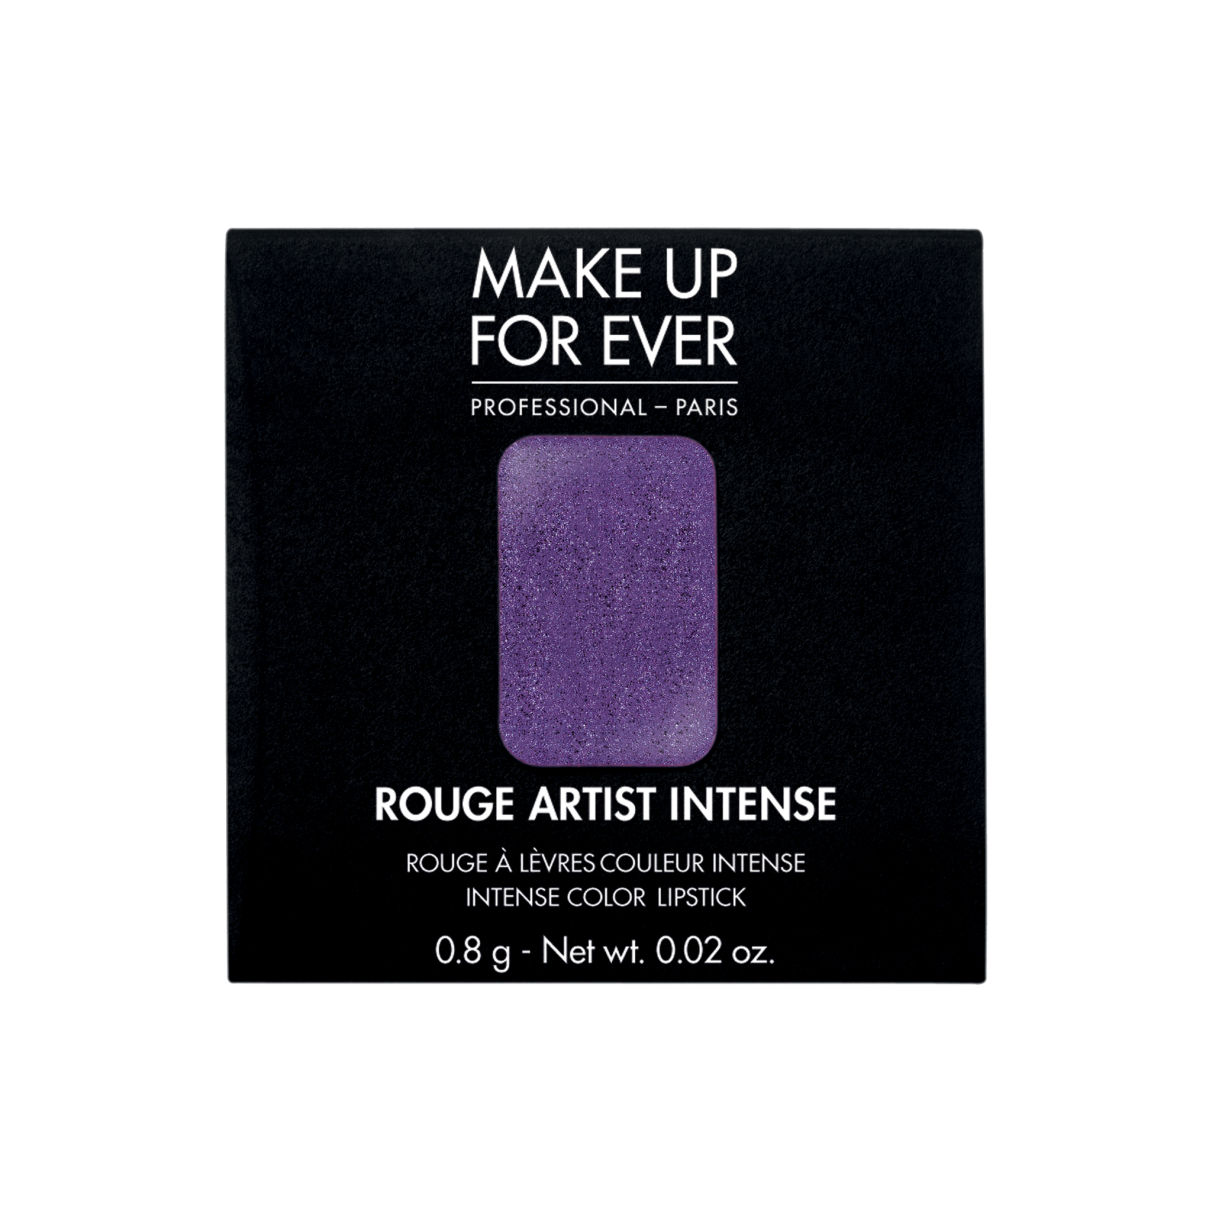 Make Up For Ever Rouge Artist Intense Refills